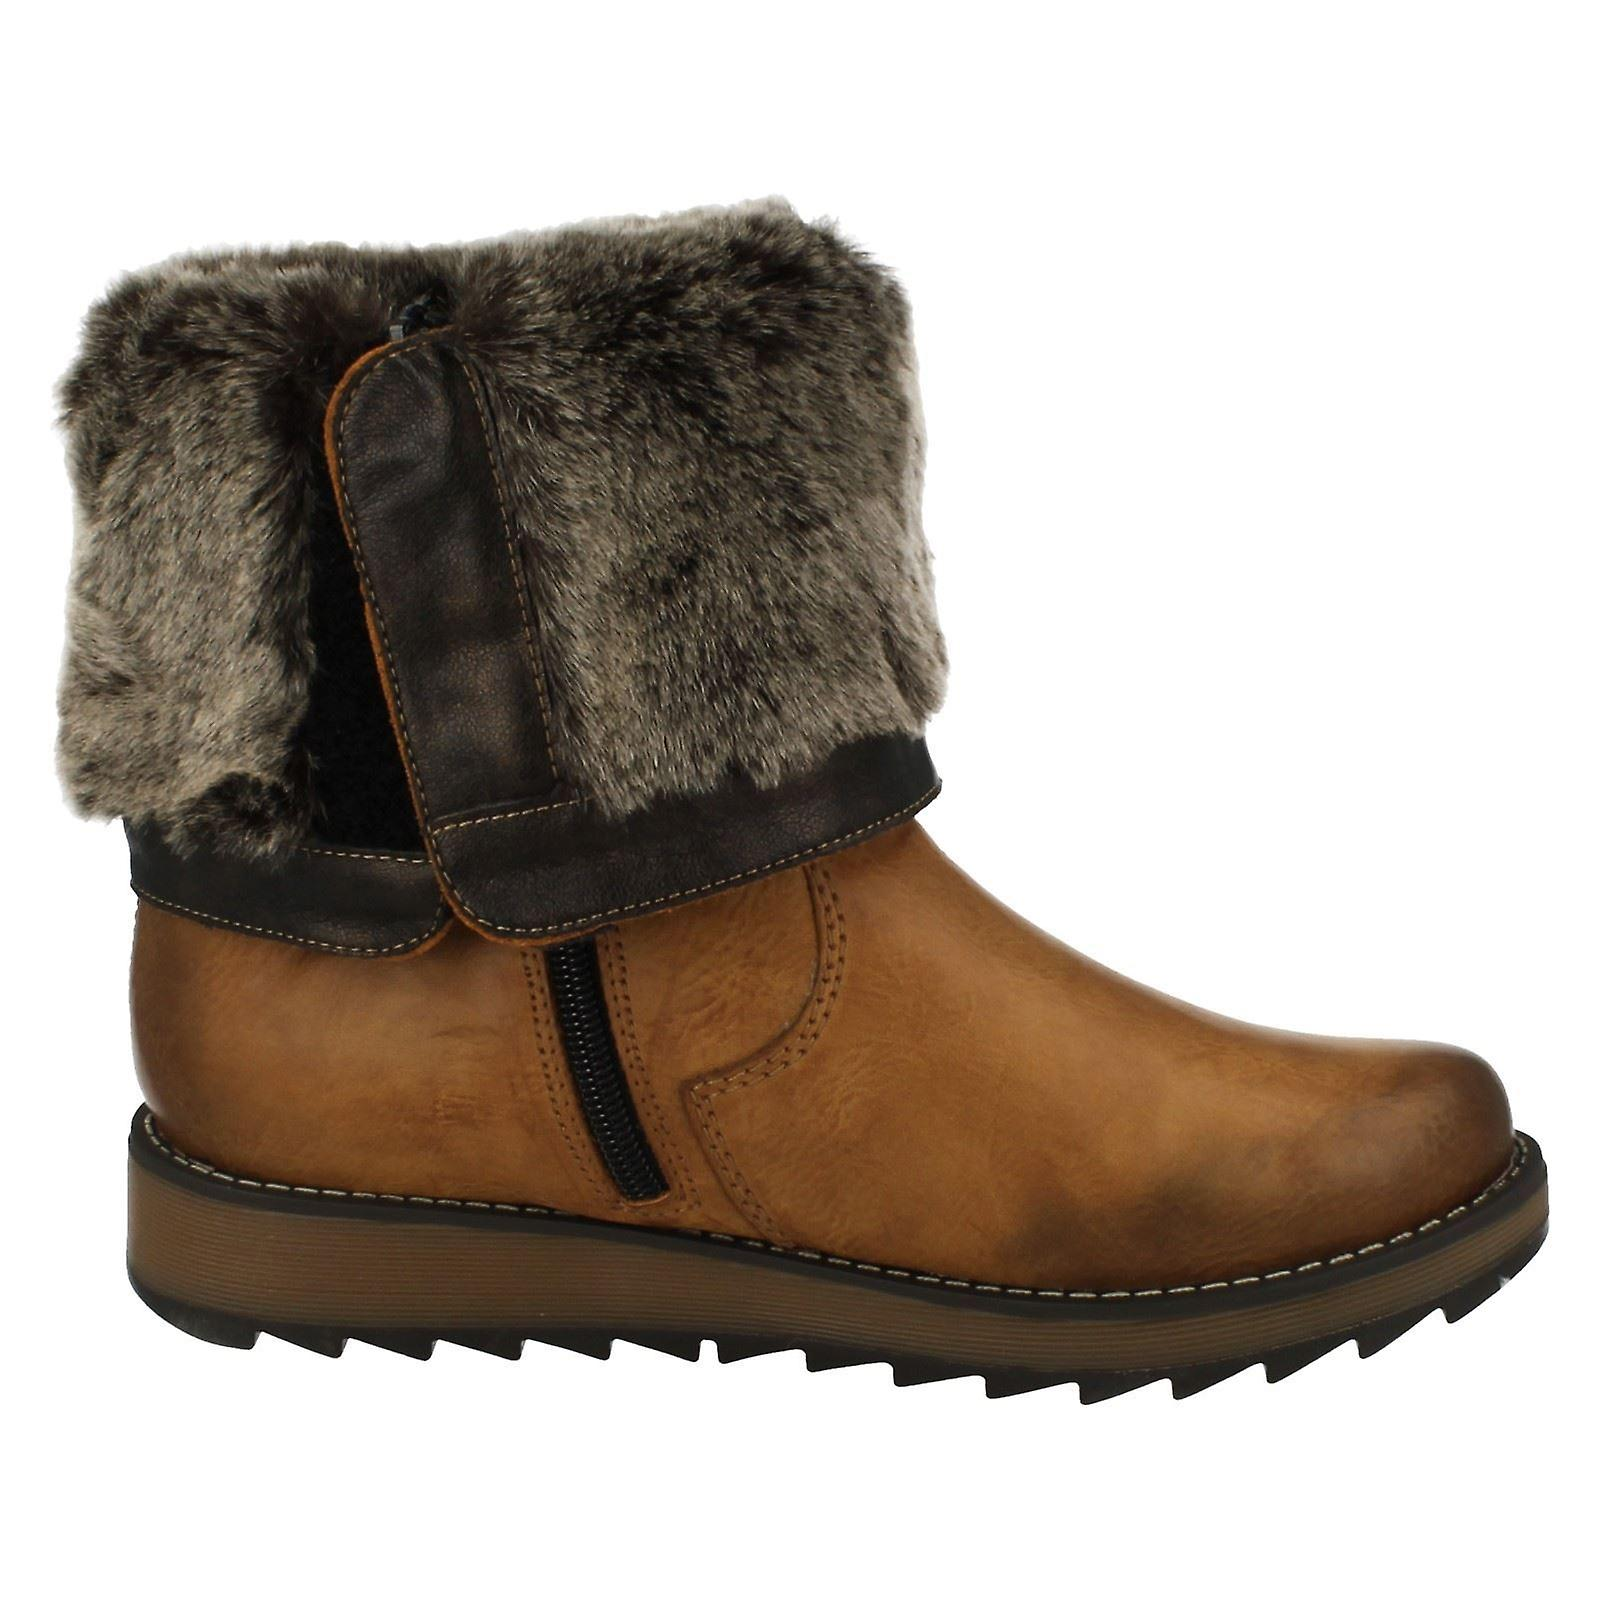 Ladies Remonte Alle Vær Warmlined Støvler D8874